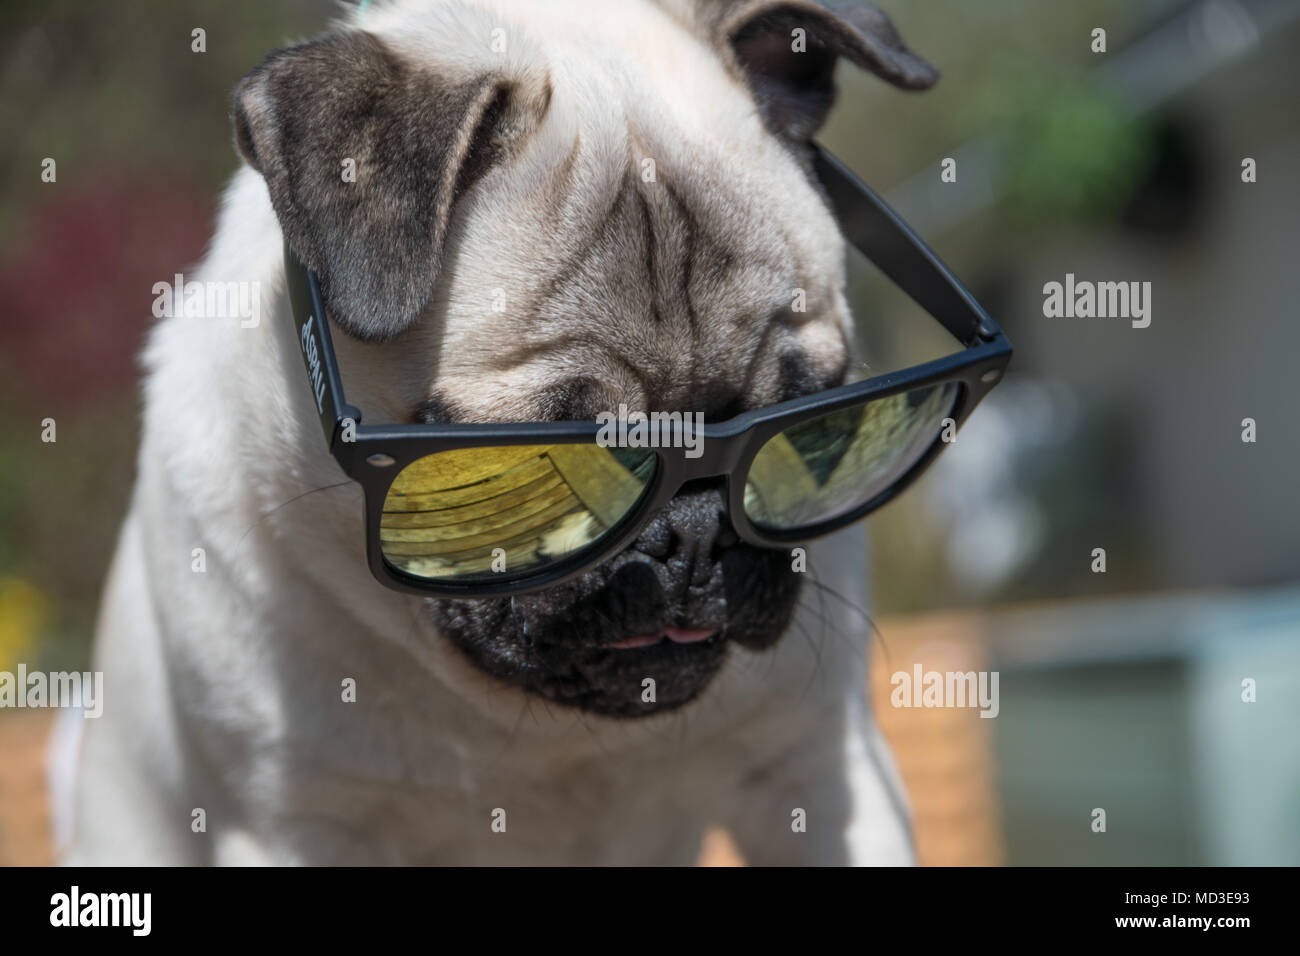 Mousehole, Cornwall, UK. 18th April 2018. UK Weather. Titan the Pug puppy out in his back garden in the bright sunshine on the hottest day of the year so far. Credit: Simon Maycock/Alamy Live News Stock Photo